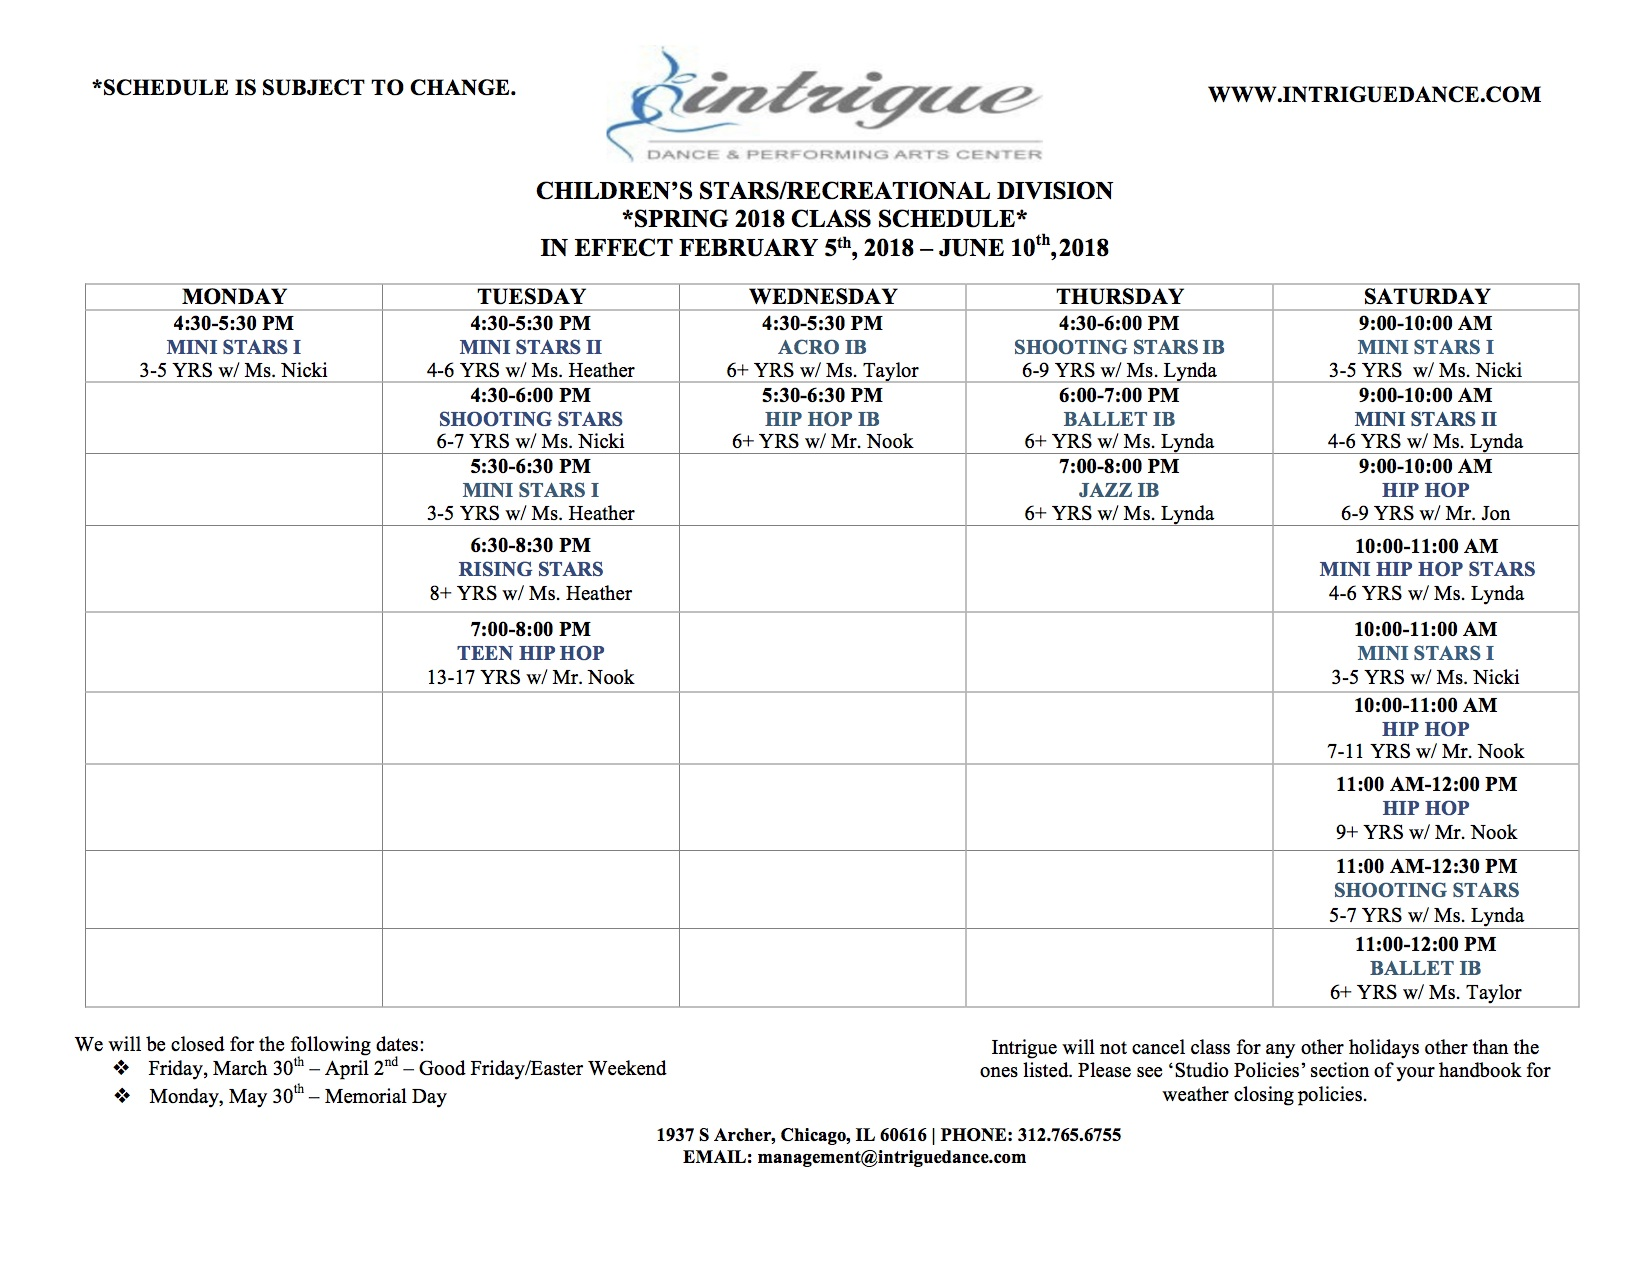 ***FOR CURRENT CLASSES THROUGH FEB. 3RD, PLEASE CALL THE STUDIO AT 312.765.6755 OR EMAIL MANAGEMENT@INTRIGUEDANCE.COM